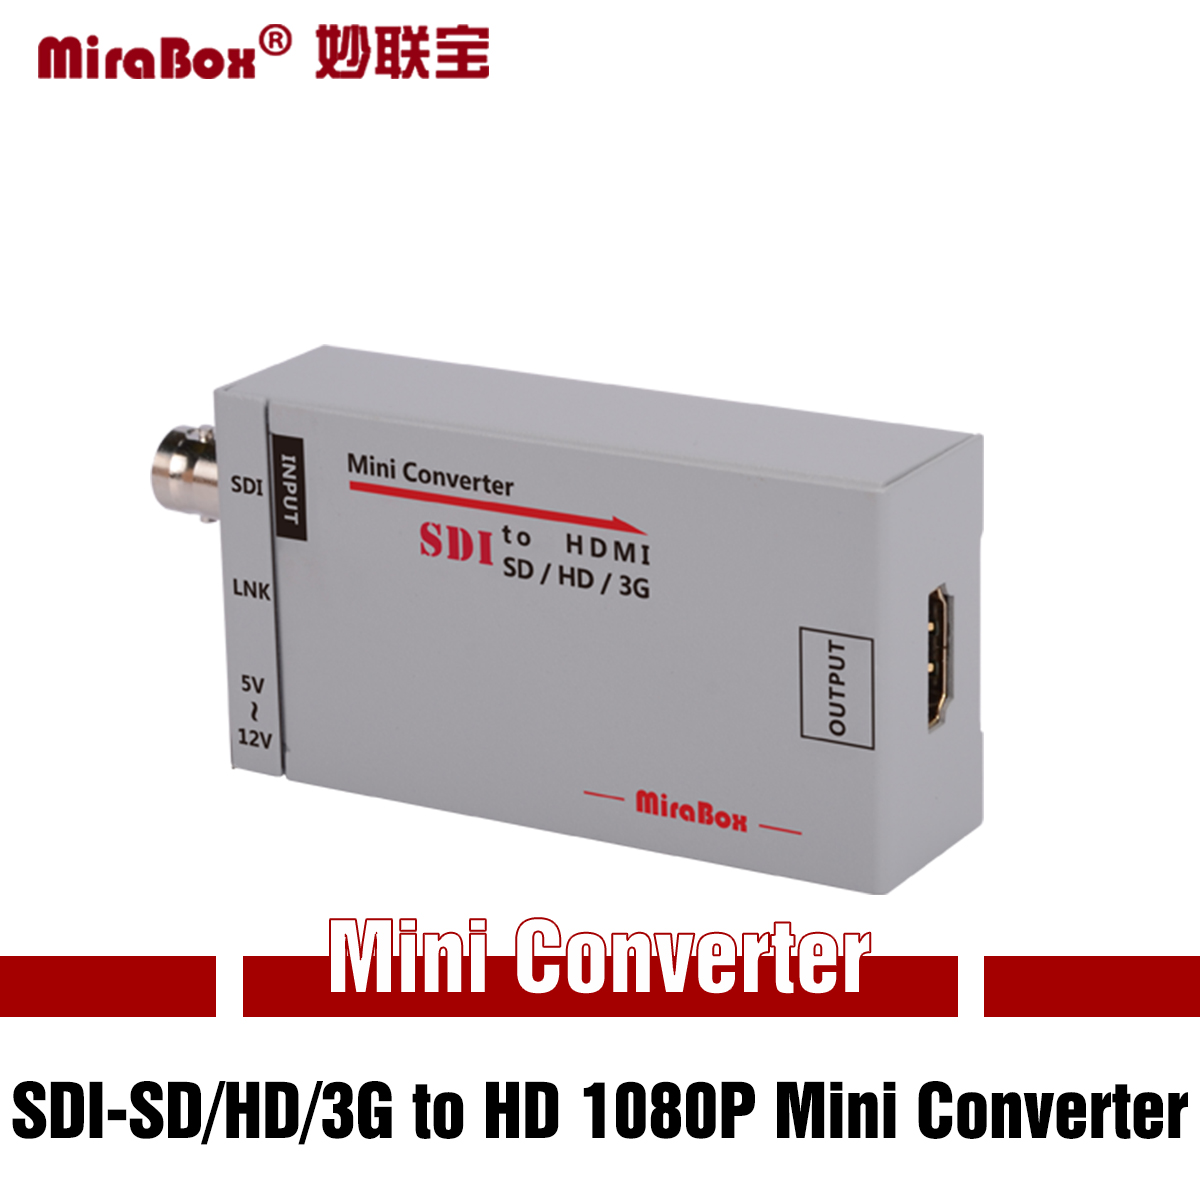 HSV190  SDI-SD/HD/3G to HD 1080P Mini Converter